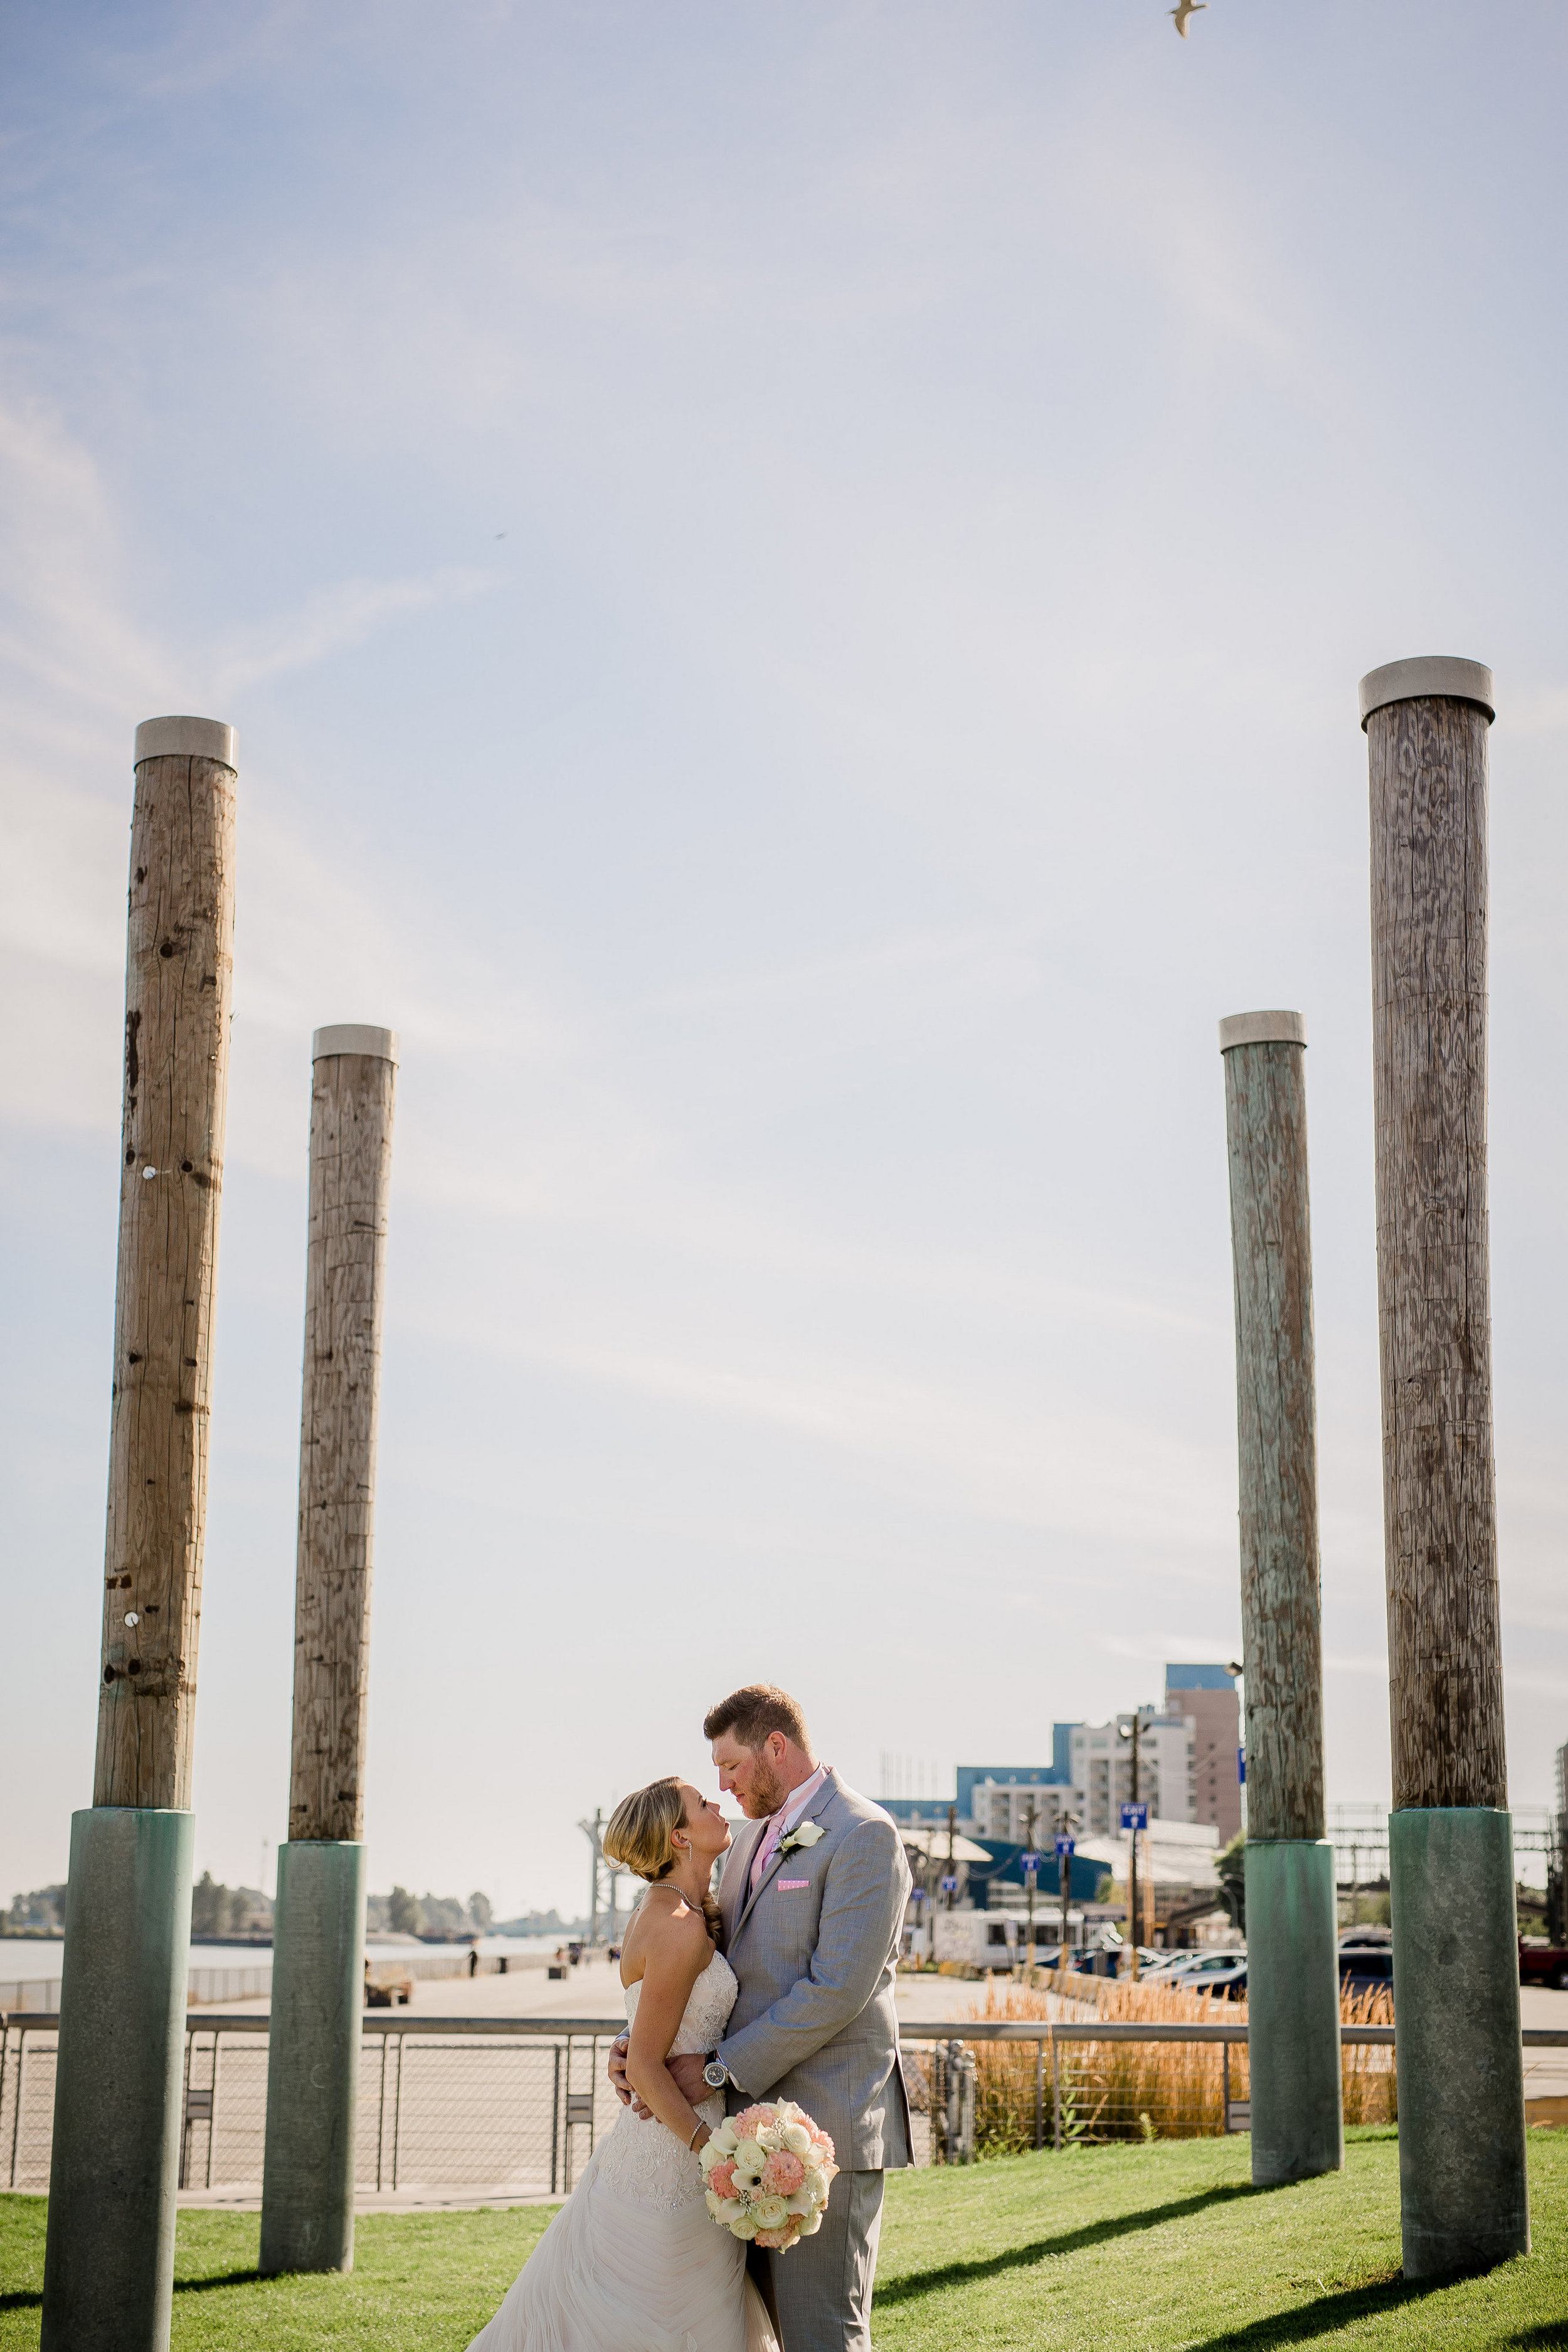 photos-at-new-westminster-pier-park